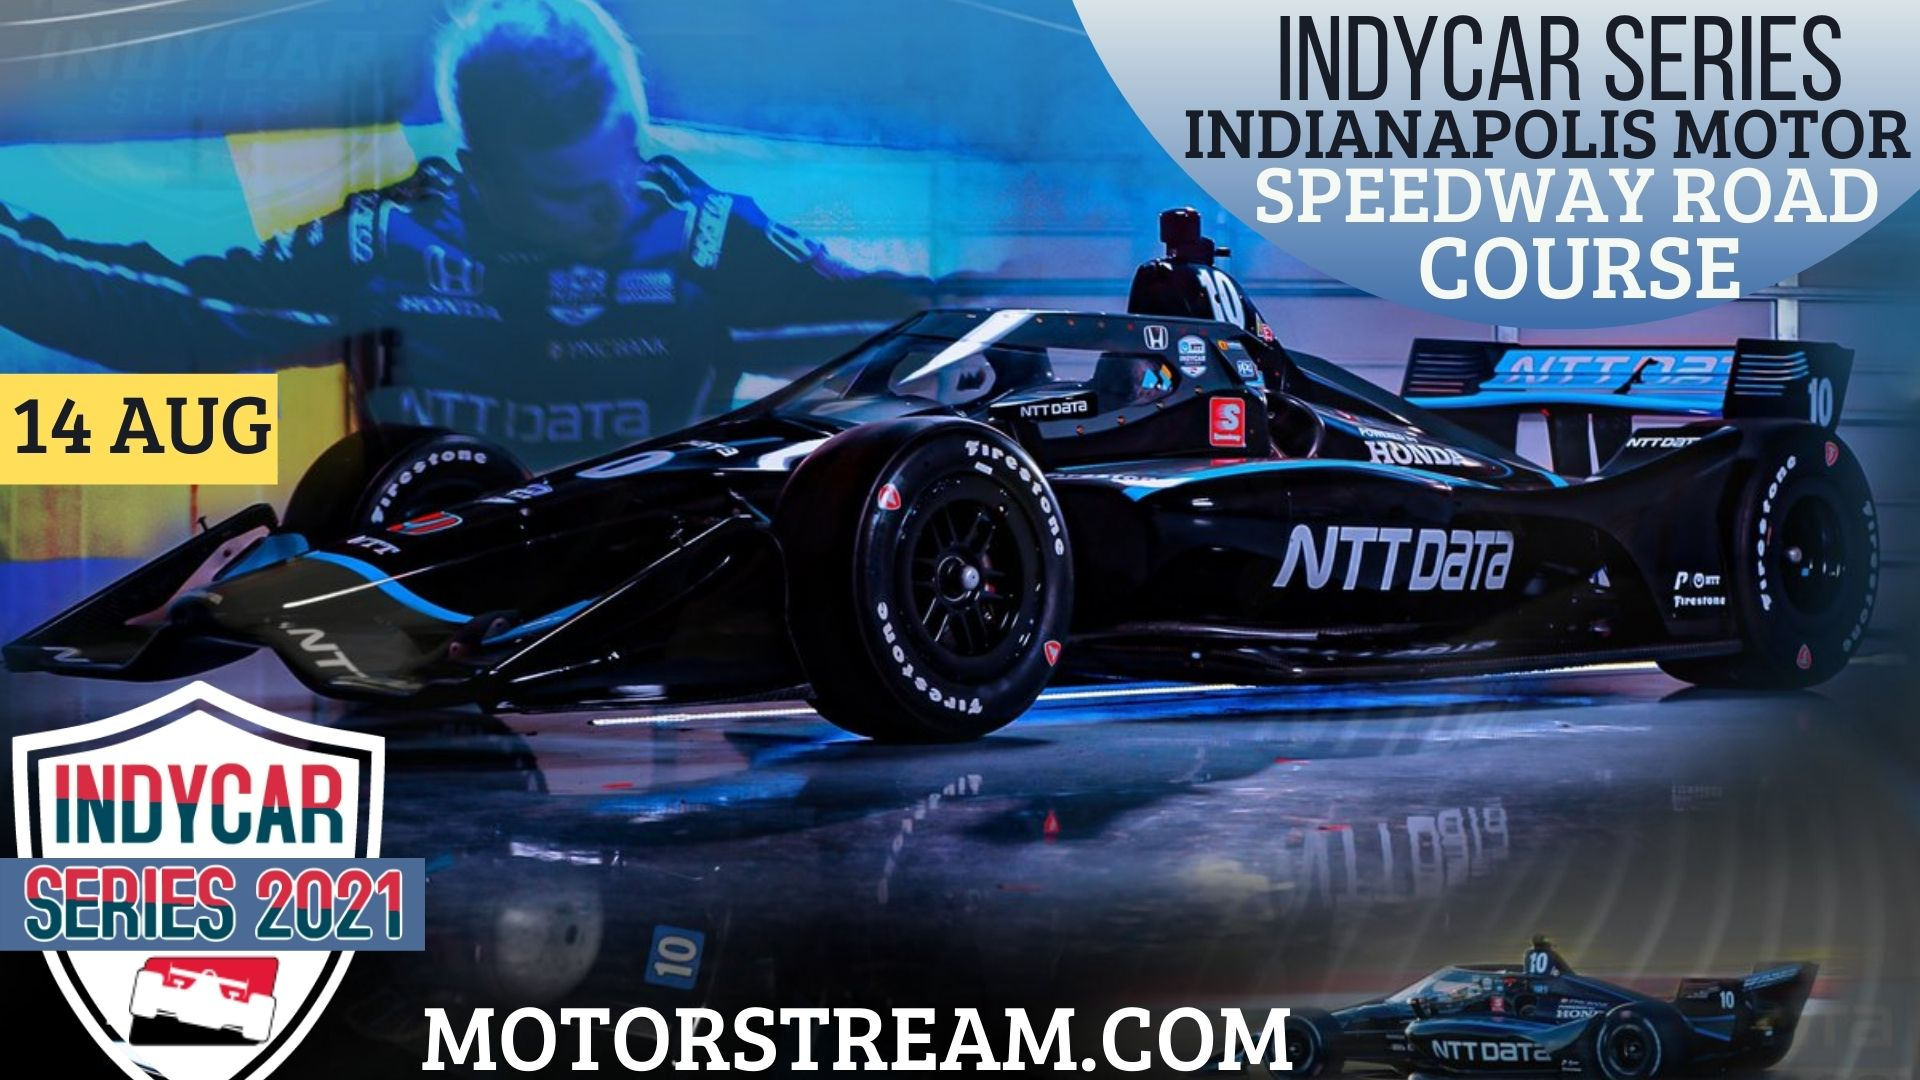 Indianapolis Motor Speedway Road Course Grand Prix Live Stream 2021